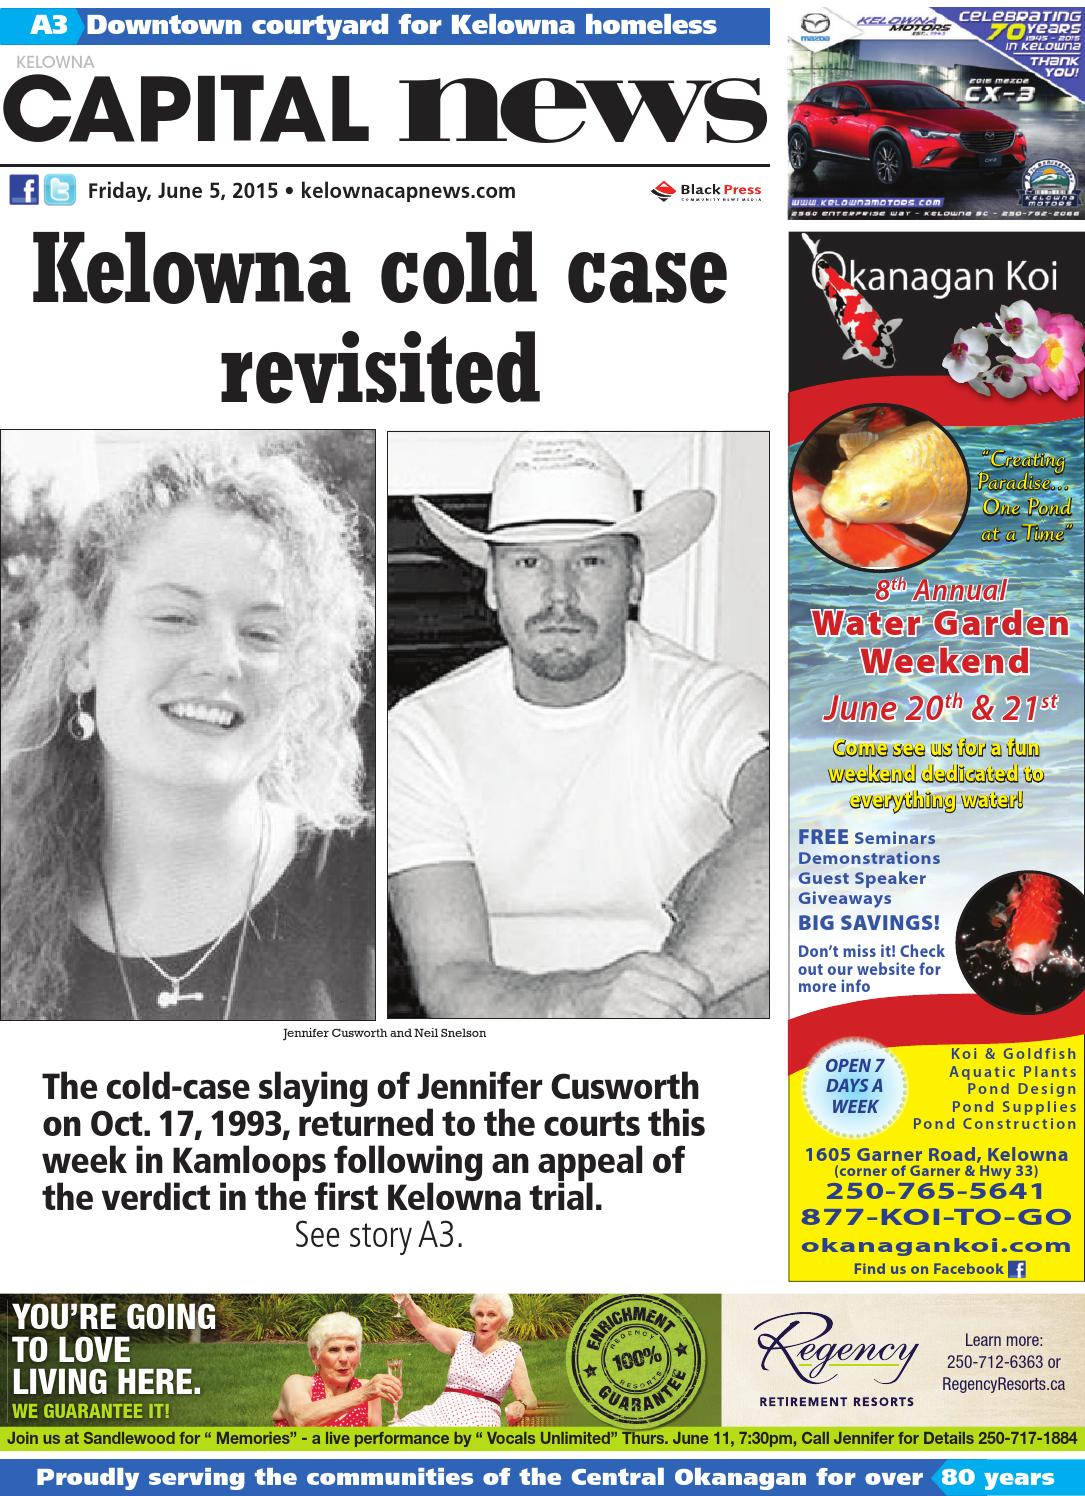 Kelowna Capital News June 05 2015 By Black Press Issuu Dean W Armstrong Geiger Counter Clicker Schematic